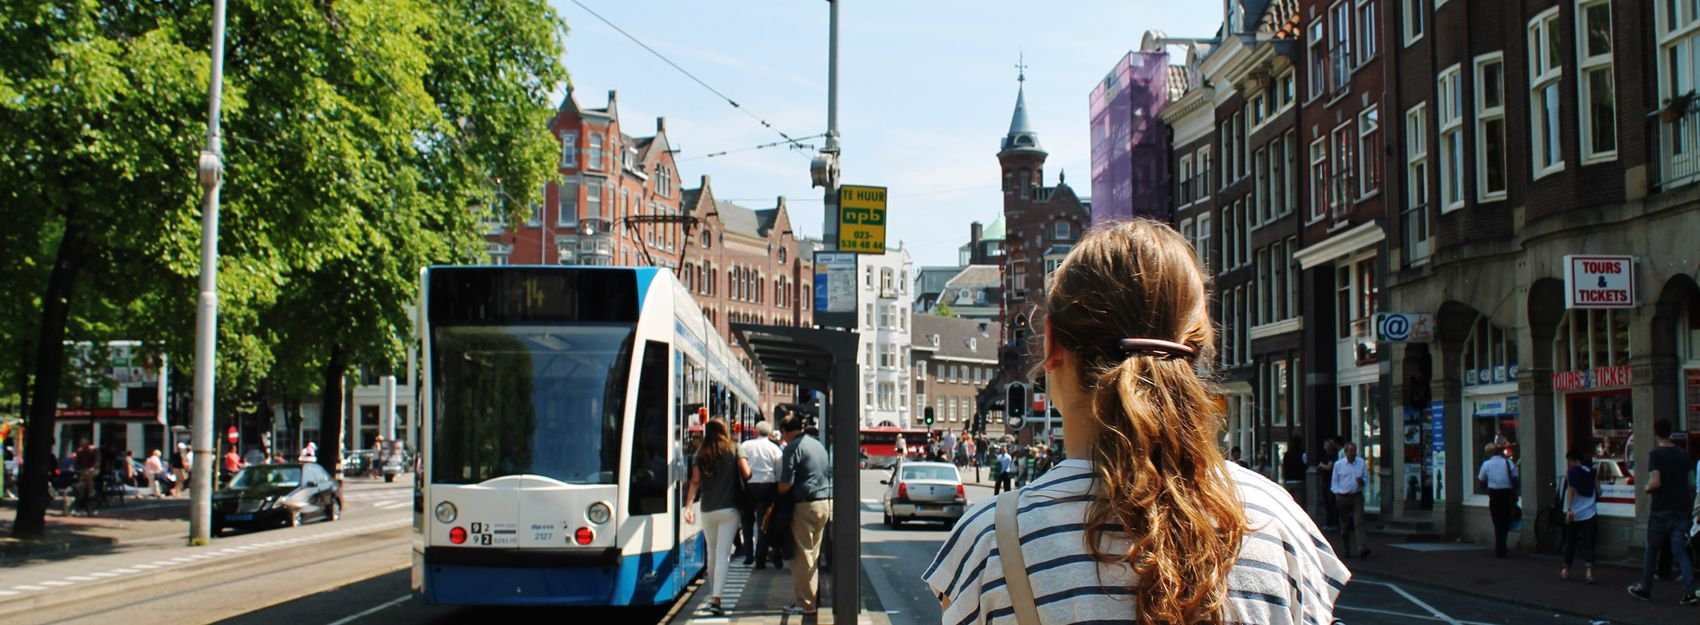 student walking down street in Amsterdam near a train line